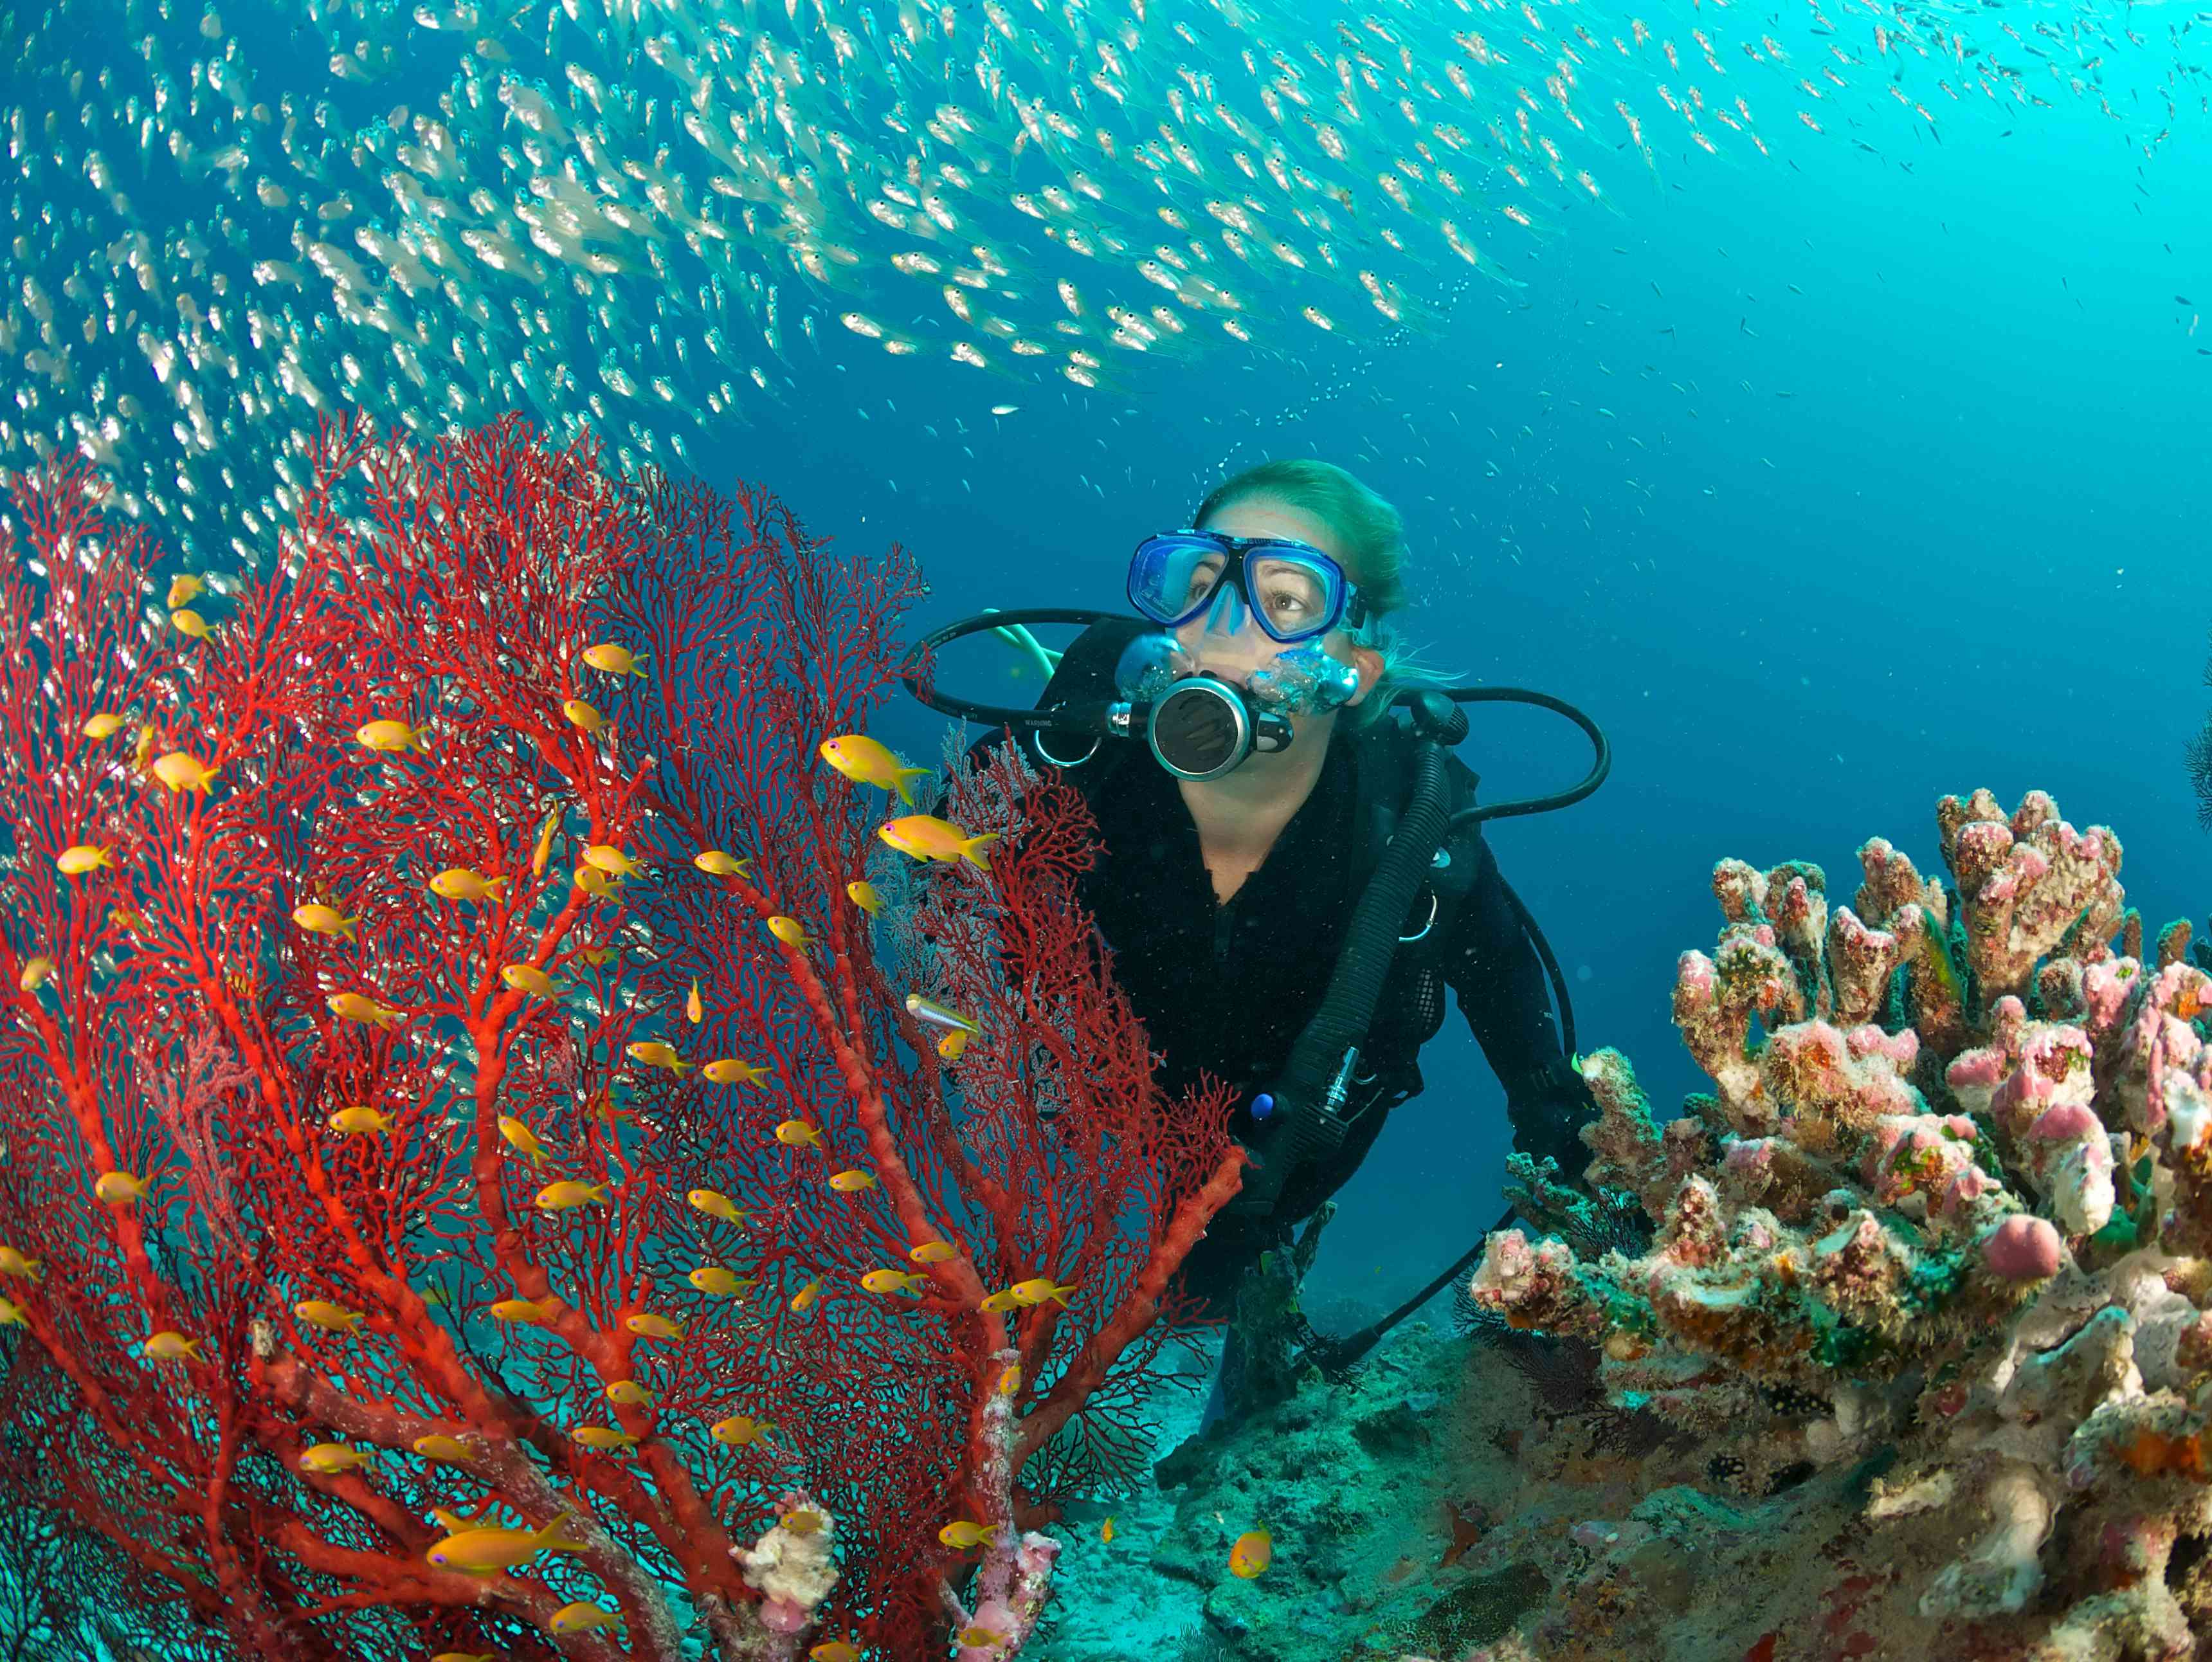 scuba diver admires fish and red fan coral